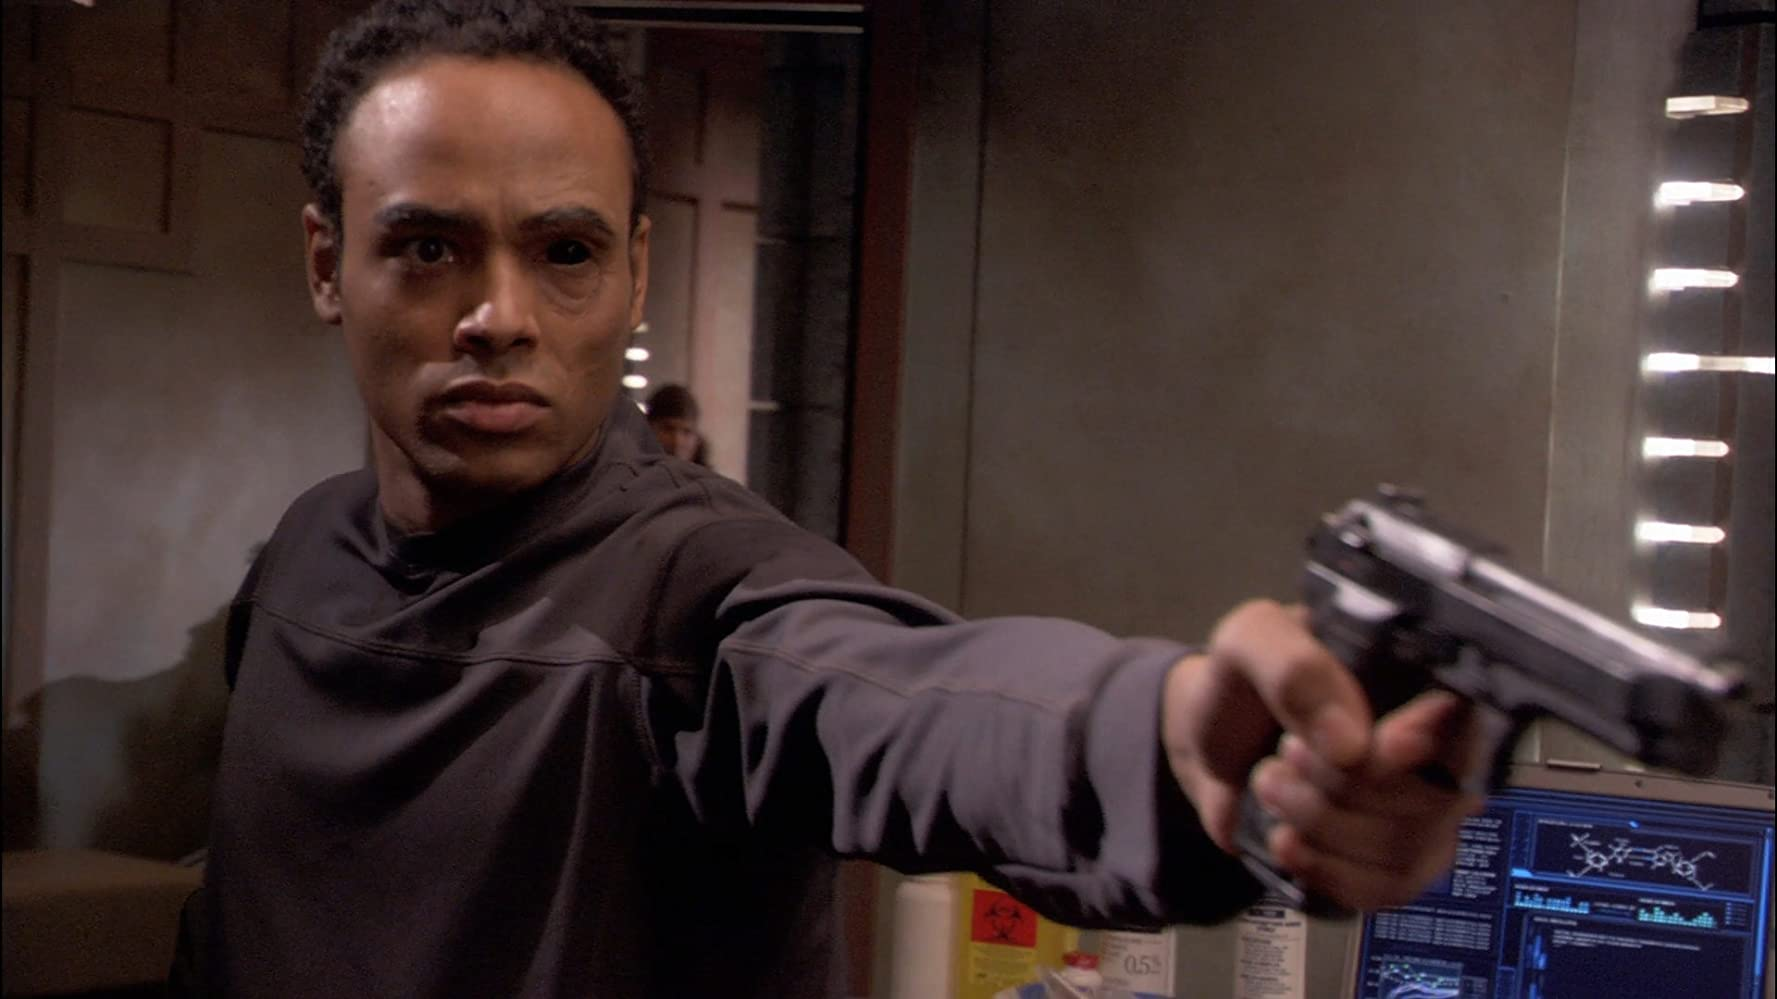 Rainbow Francks in Stargate: Atlantis (2004)